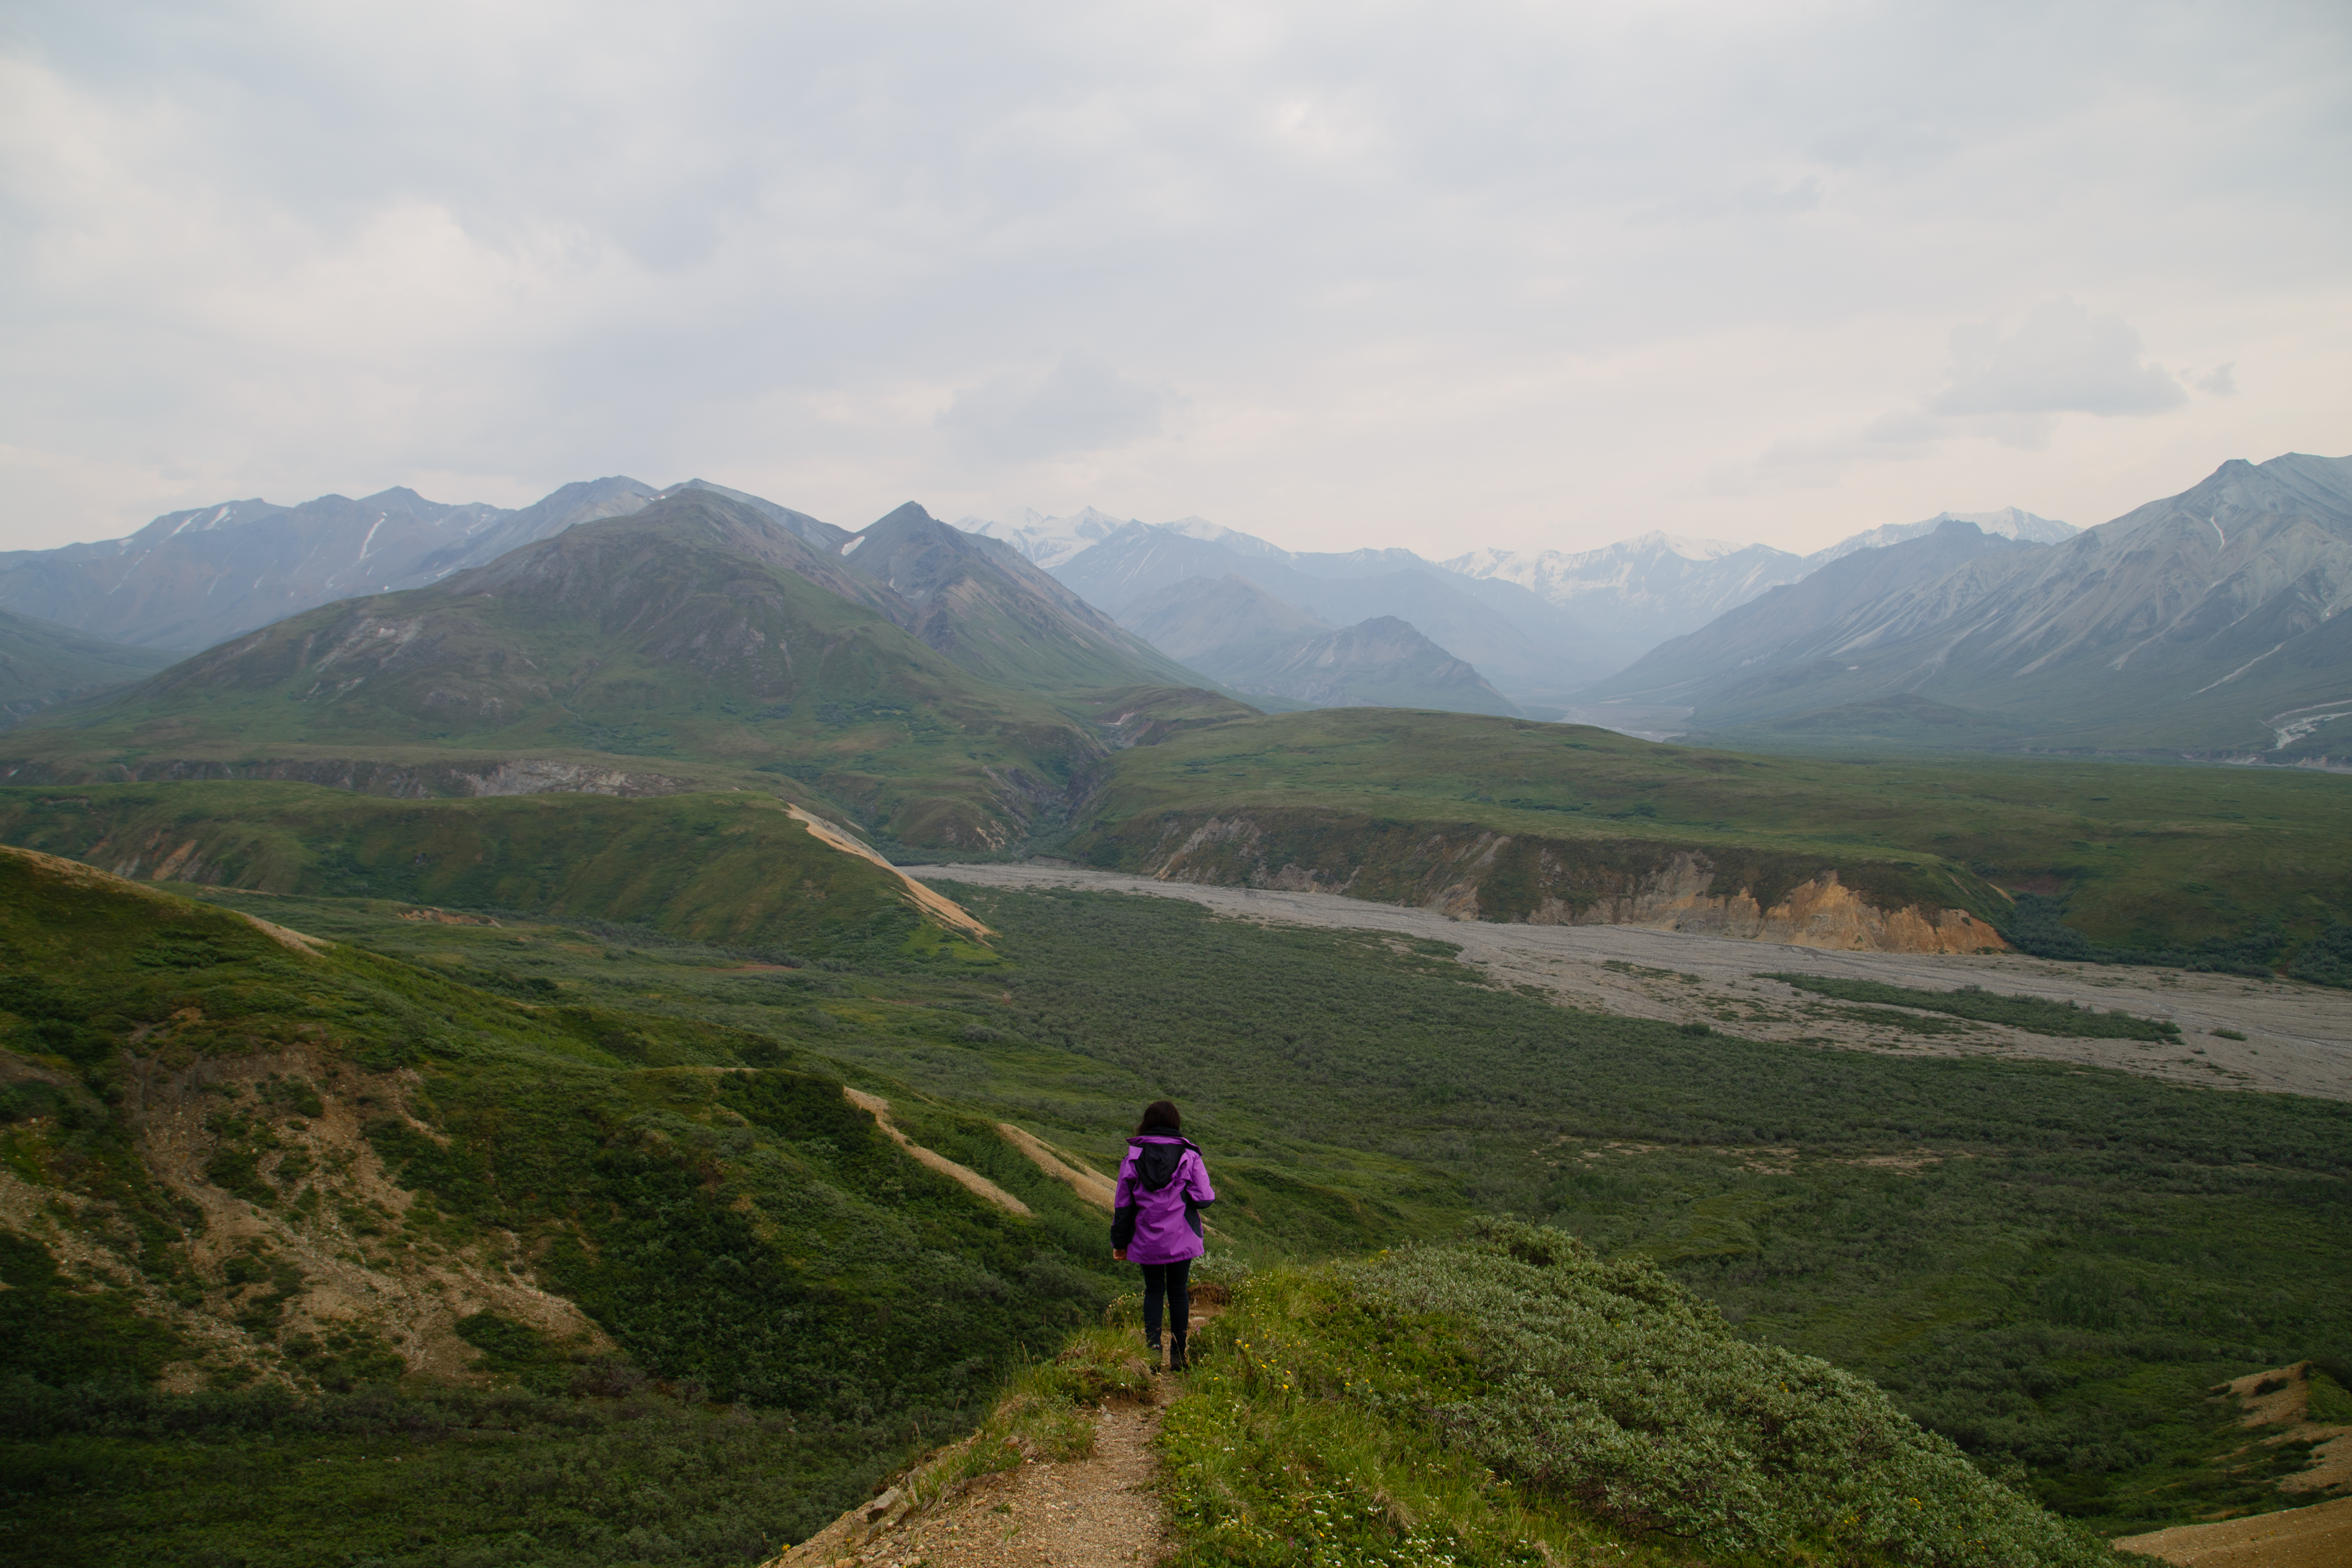 Day 3 - Bus to Eielson - IMG_2892.jpg